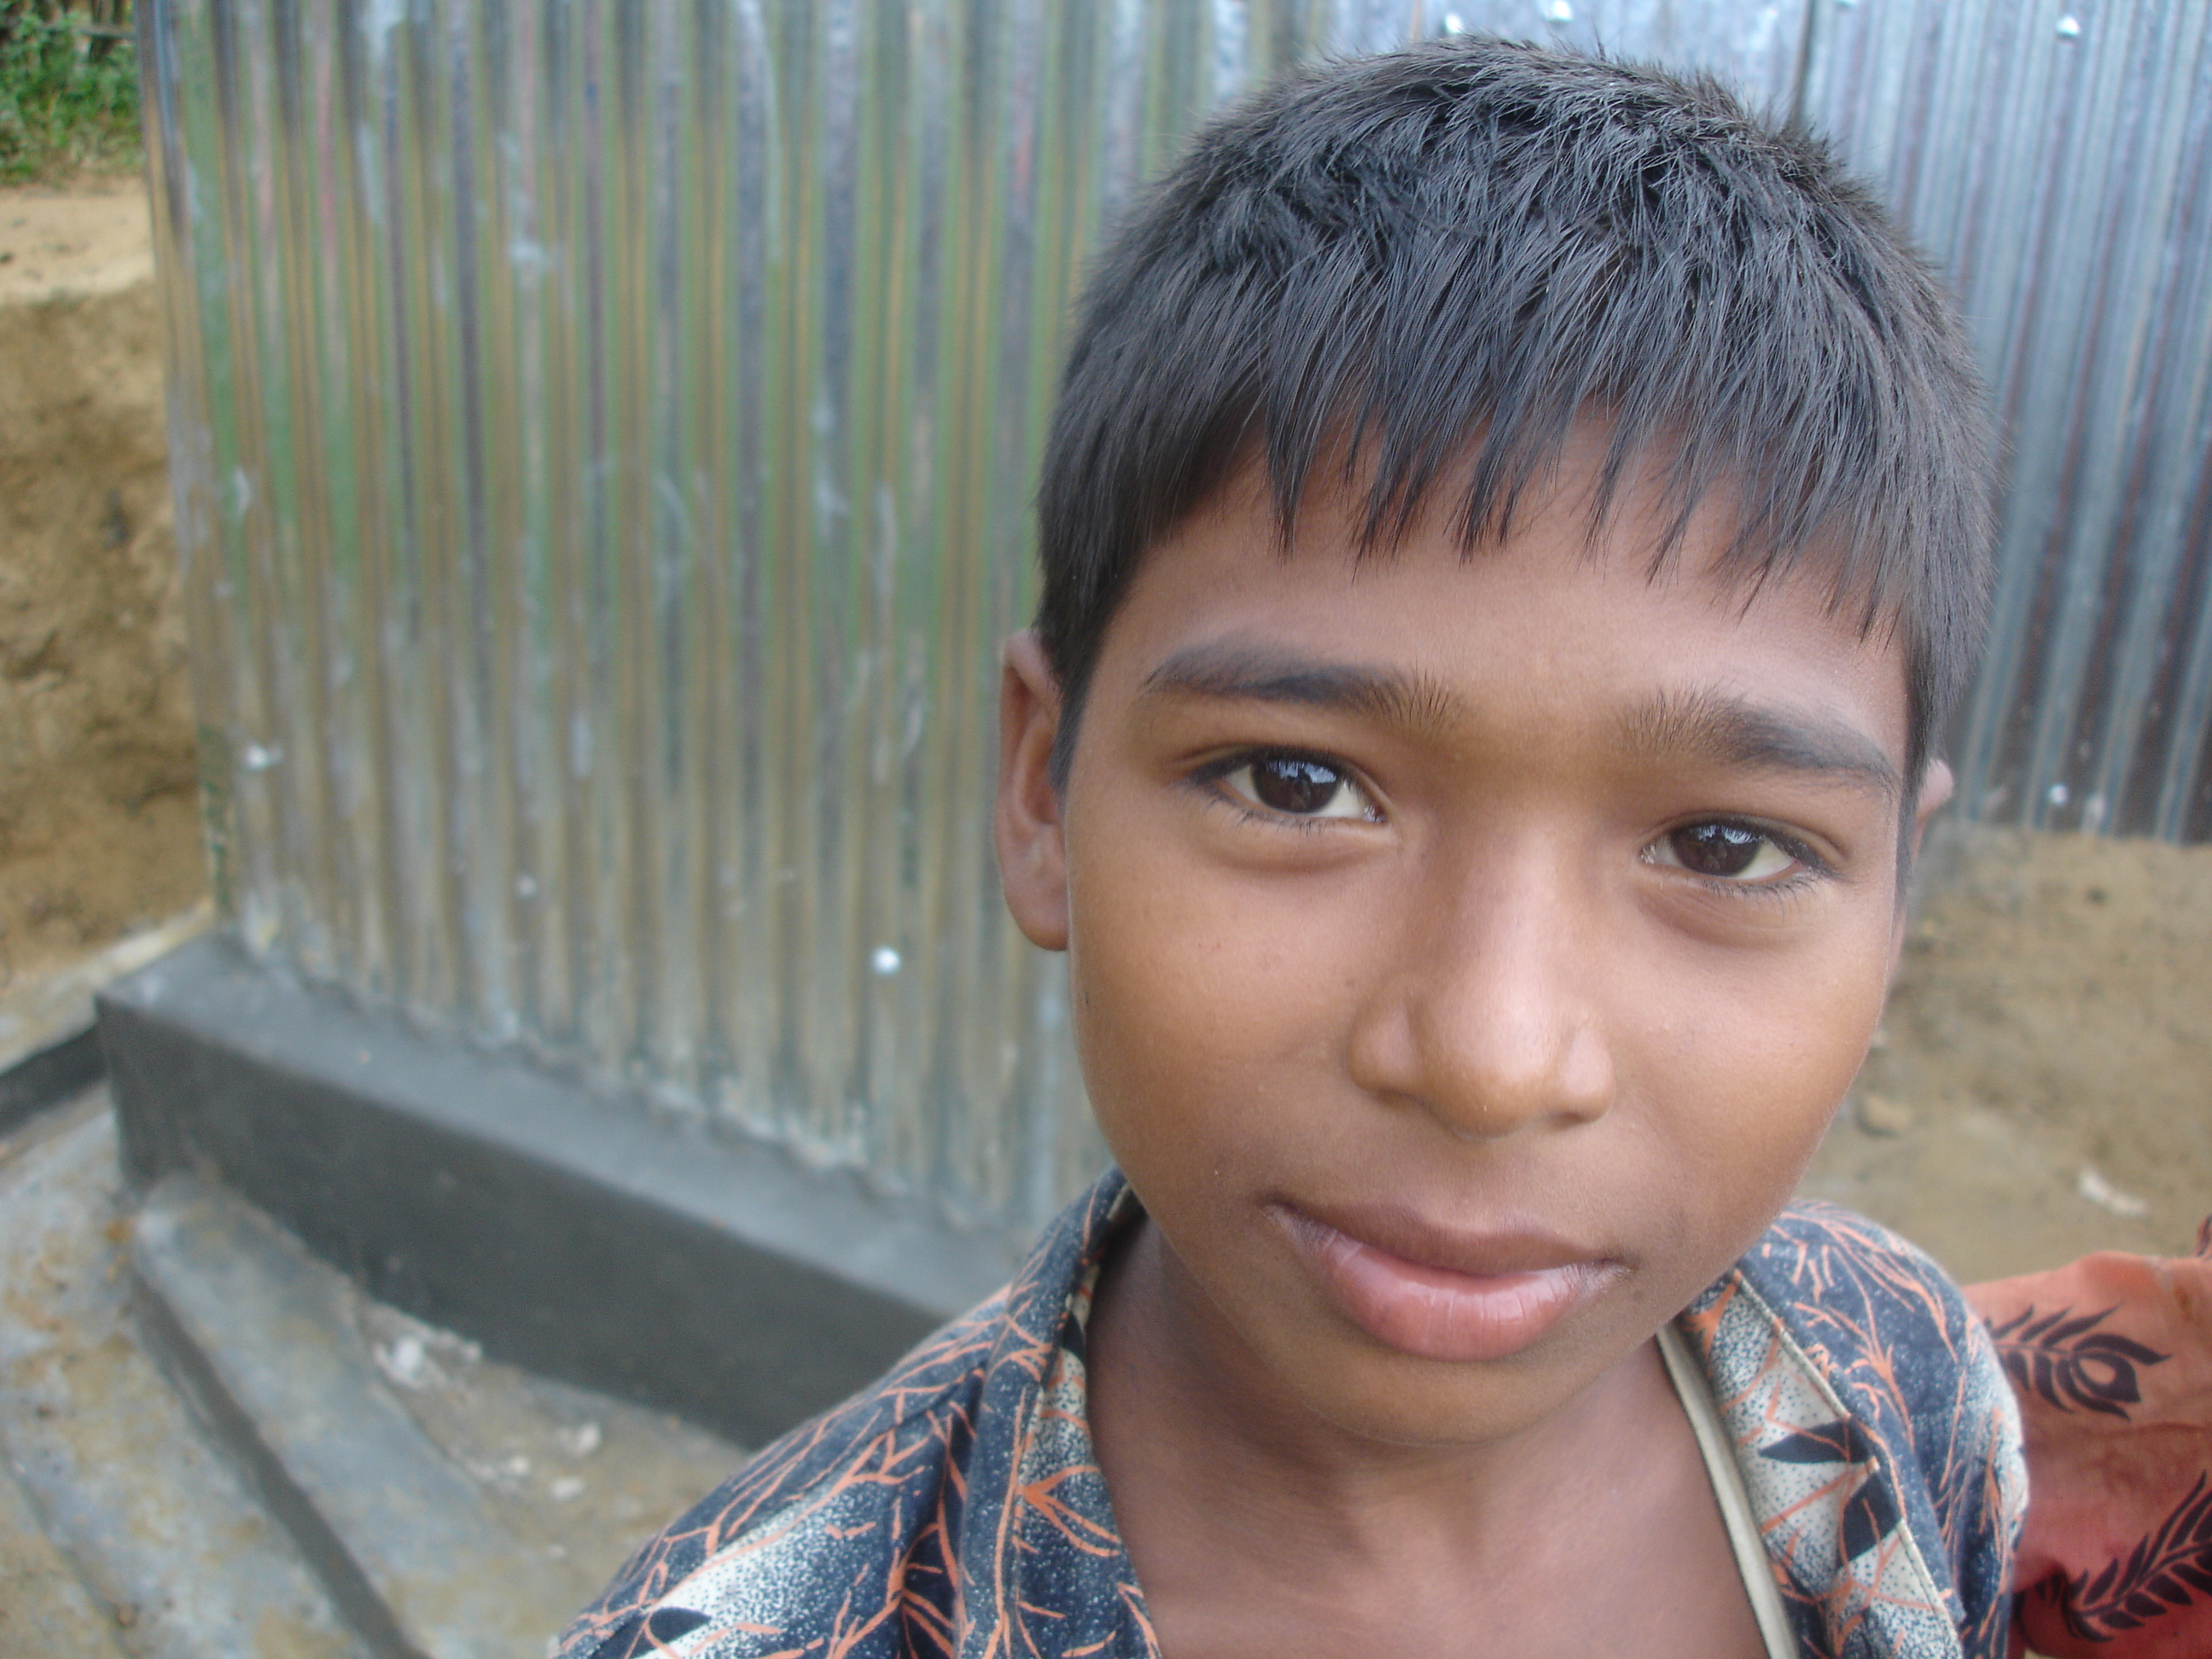 A Rohingya boy looks to the camera in southern Bangladesh. There are upwards of 200,000 Rohingya in the country, many of whom fled Myanmar in 1991.